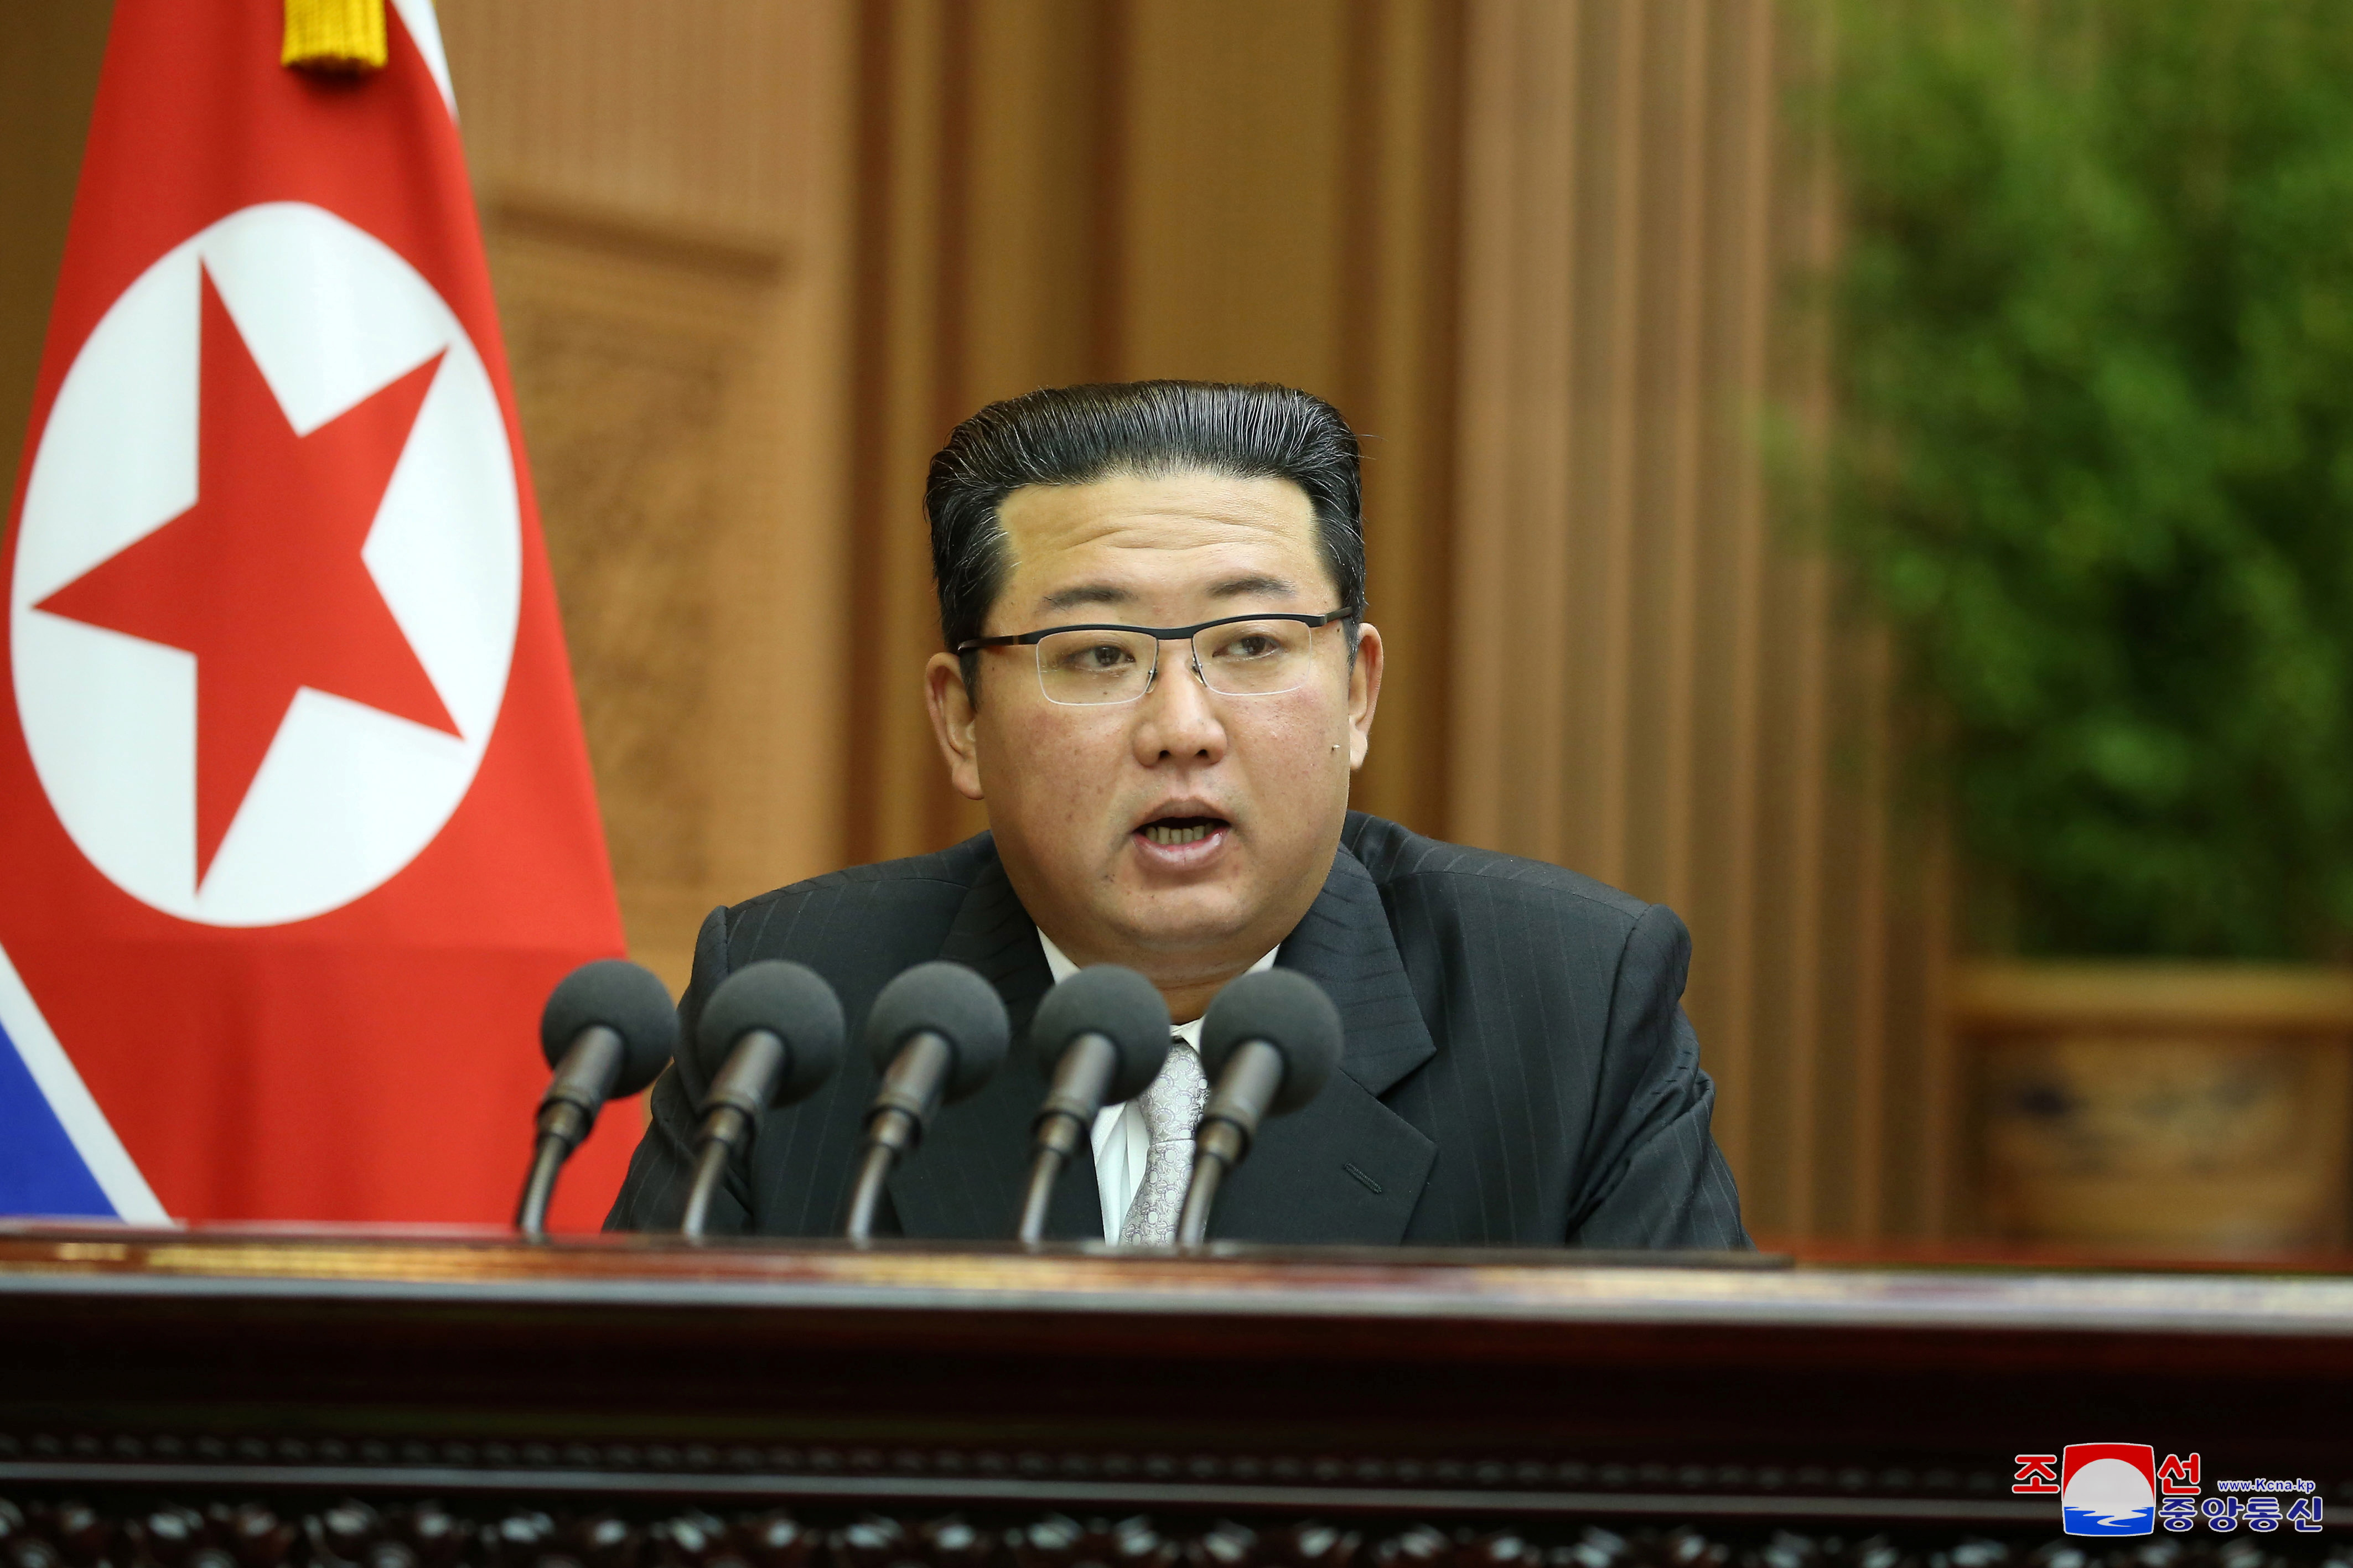 North Korean leader Kim Jong Un delivers a policy speech at the second-day sitting of the 5th Session of the 14th Supreme People's Assembly (SPA) of the Democratic People's Republic of Korea (DPRK) at the Mansudae Assembly Hall in Pyongyang, North Korea, in this undated photo released on September 30, 2021 by North Korea's Korean Central News Agency (KCNA). KCNA via REUTERS